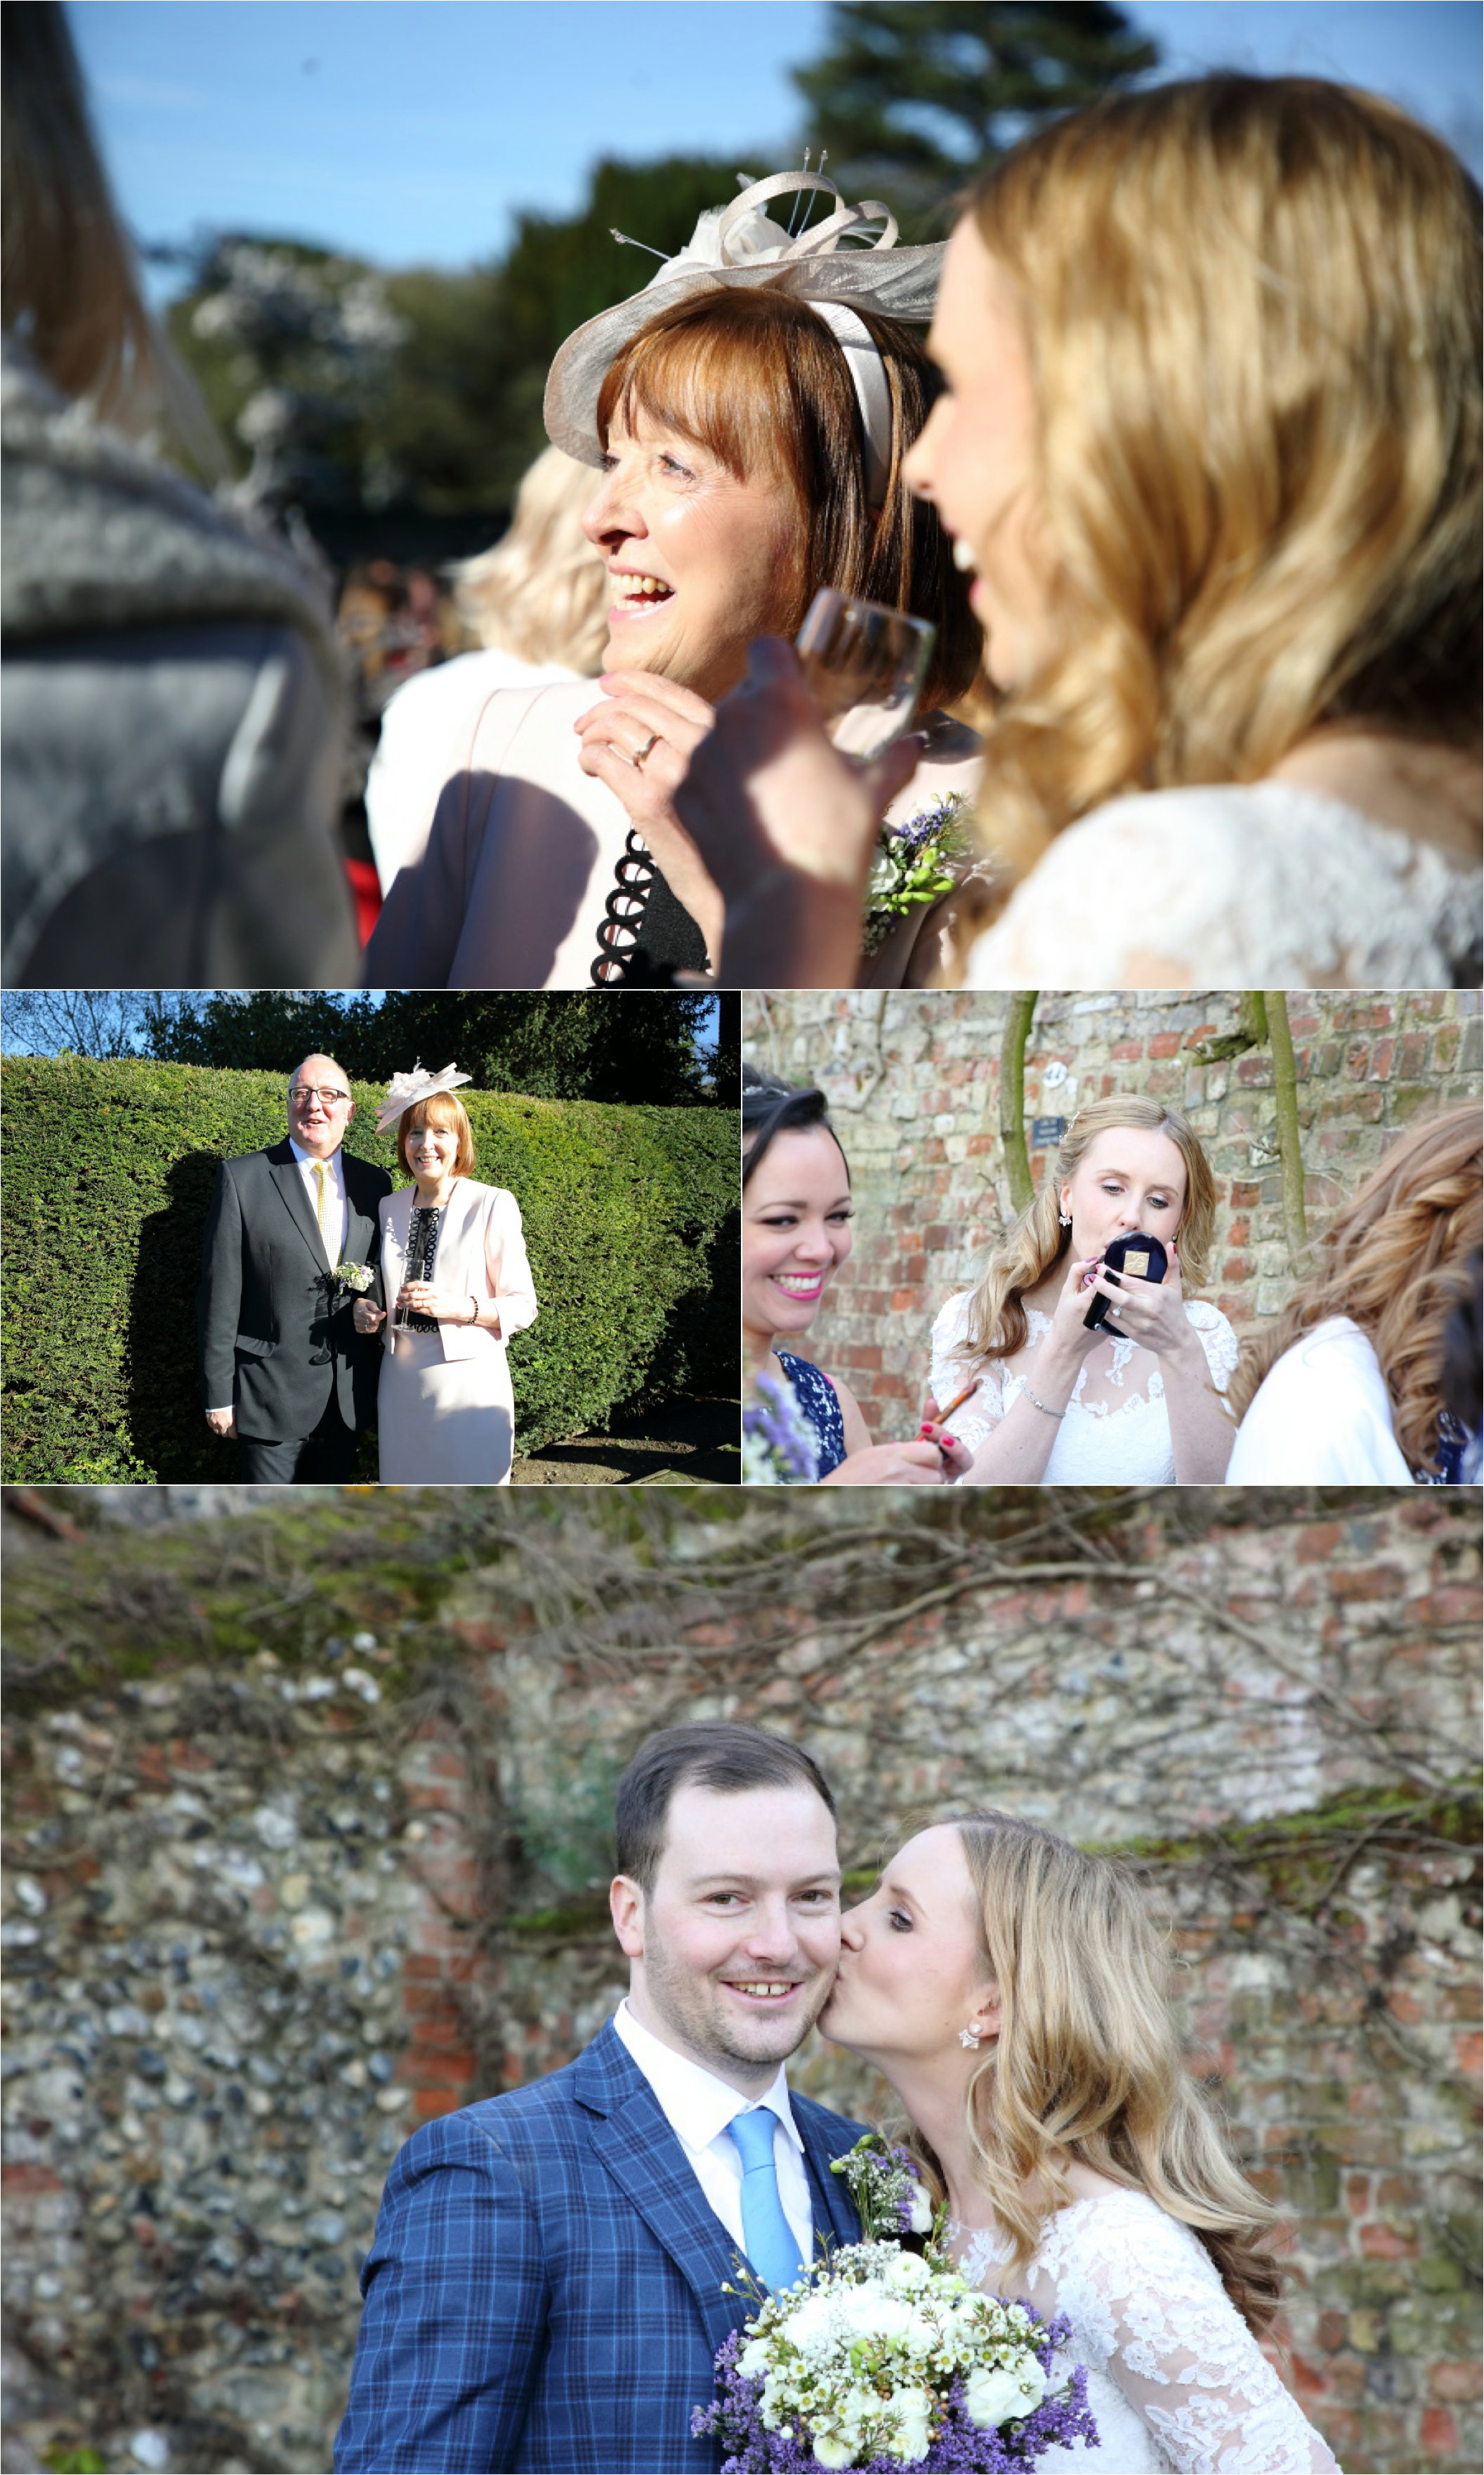 alternative fun wedding photography in the abbey gardens, bury st edmunds